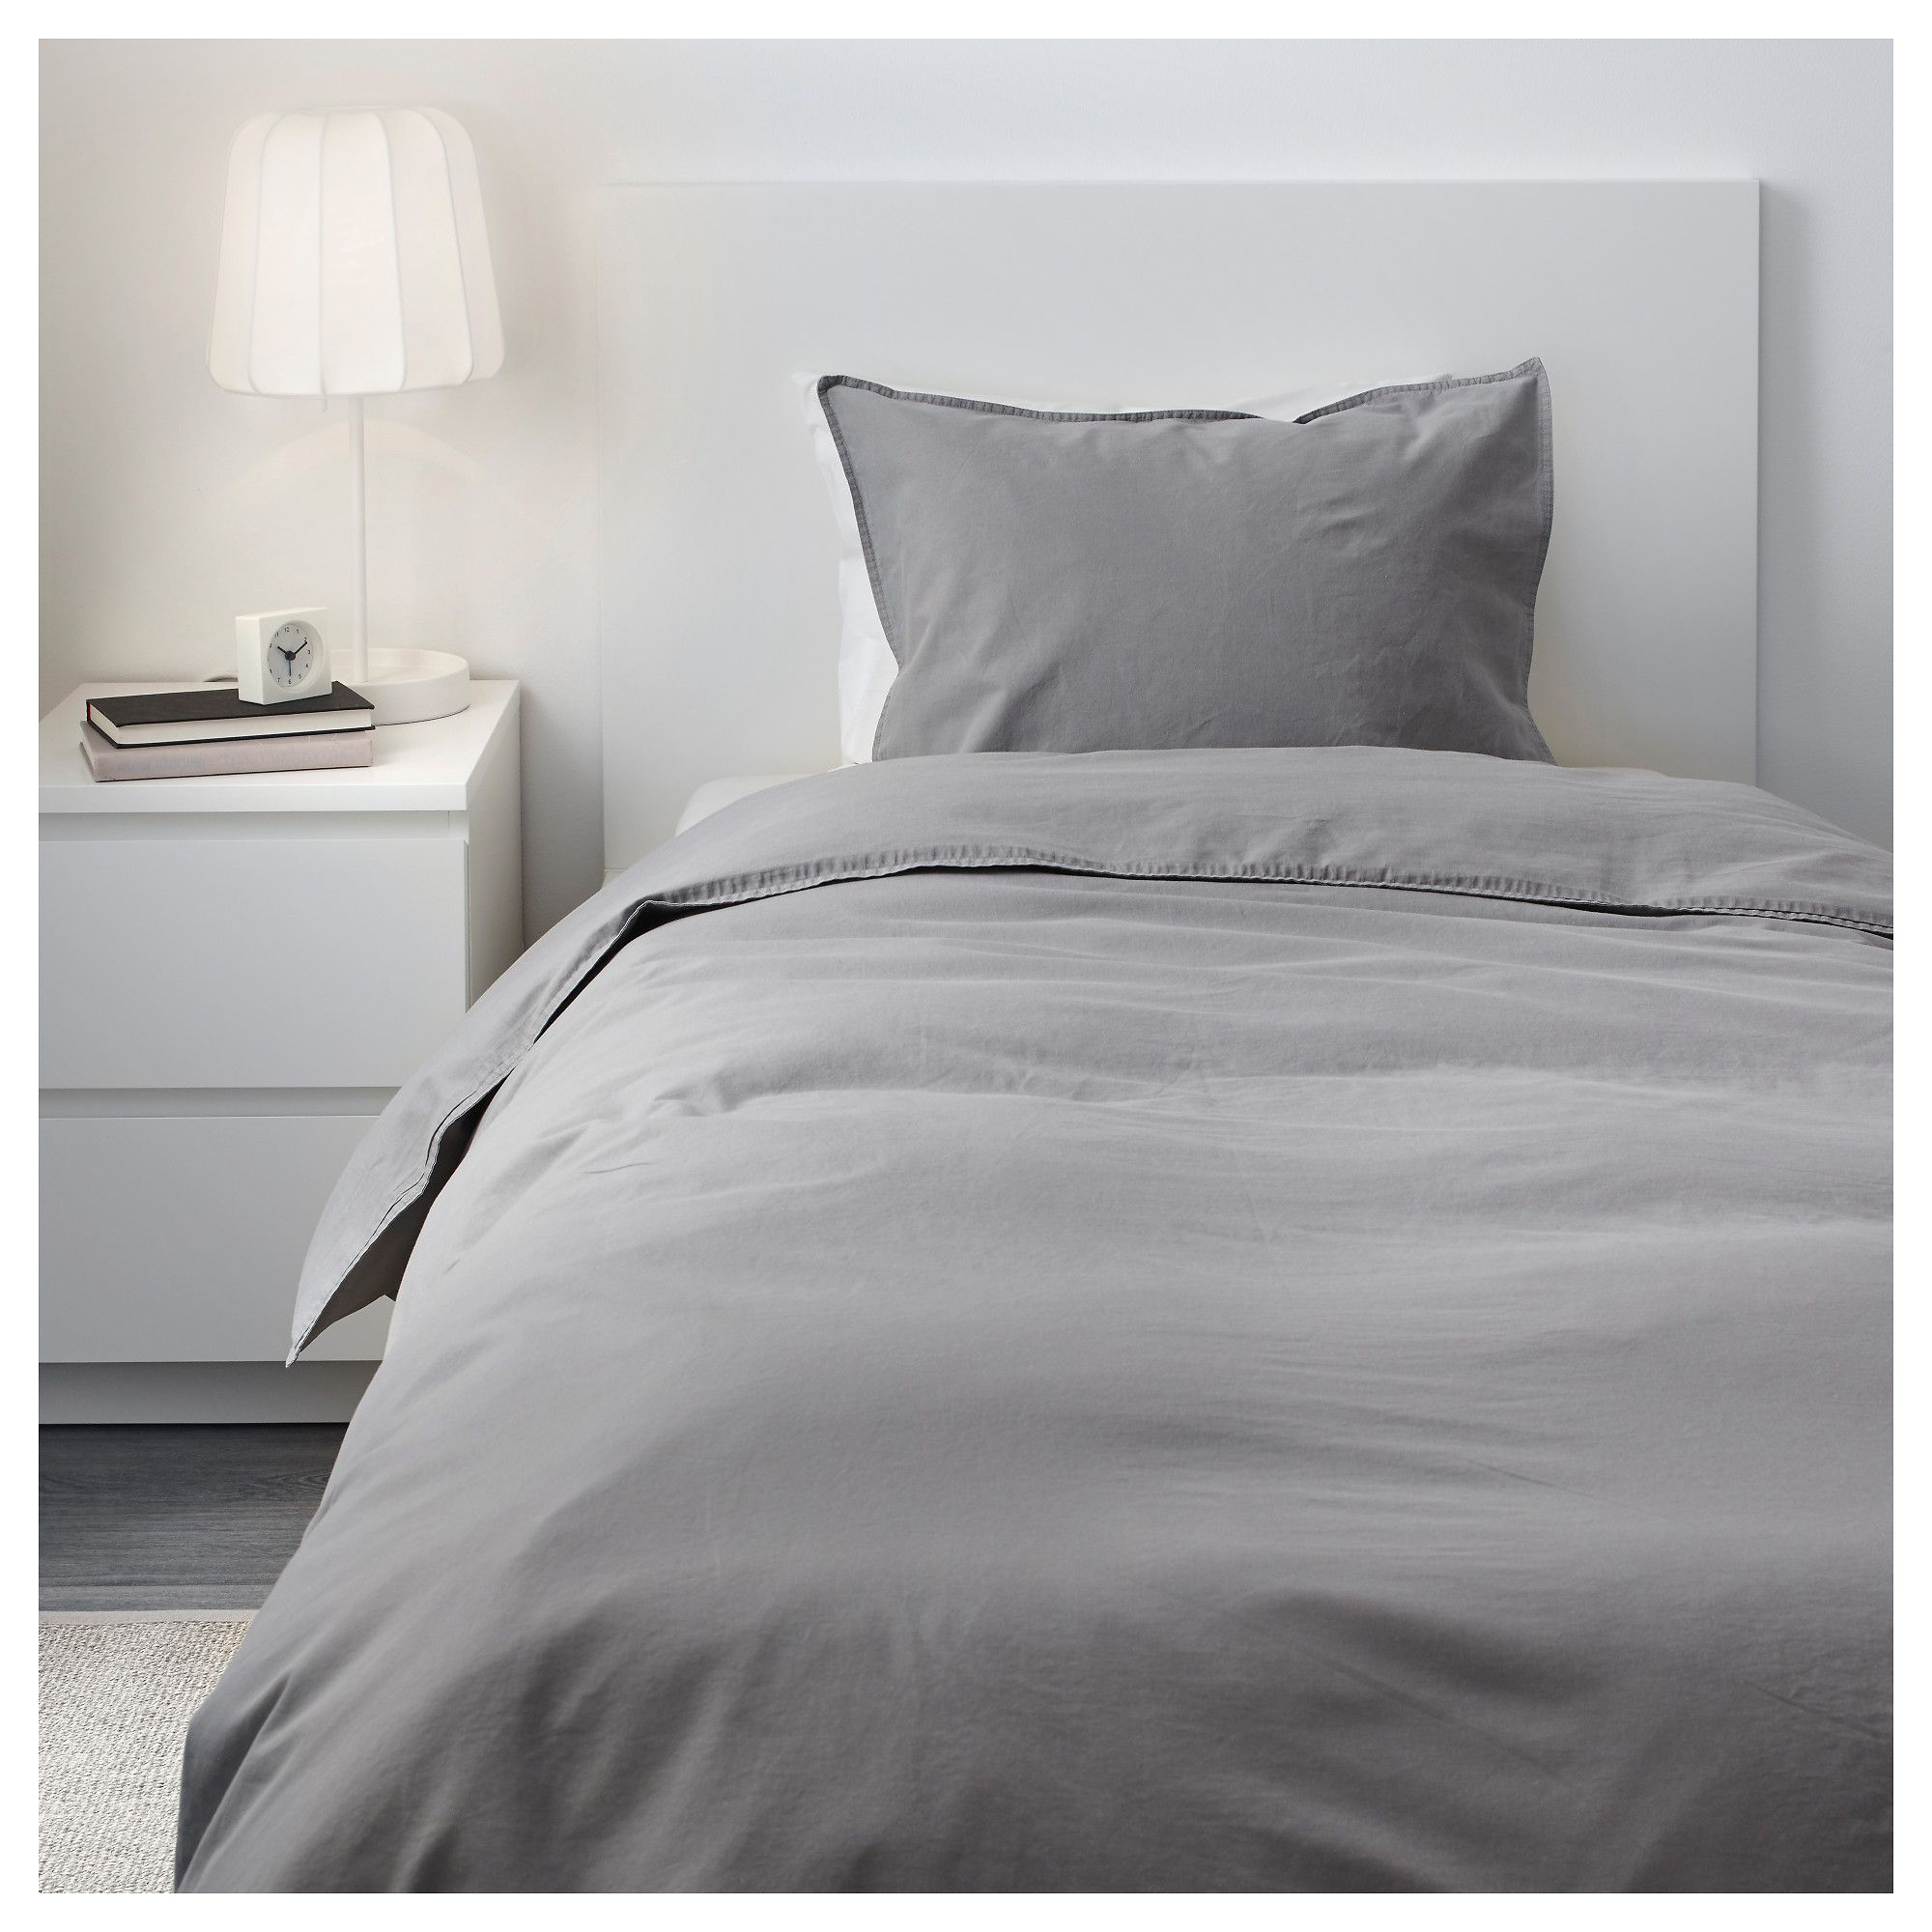 minogue ebay throw duvet grey cover kylie bedding cushion slate bdfd itm gia